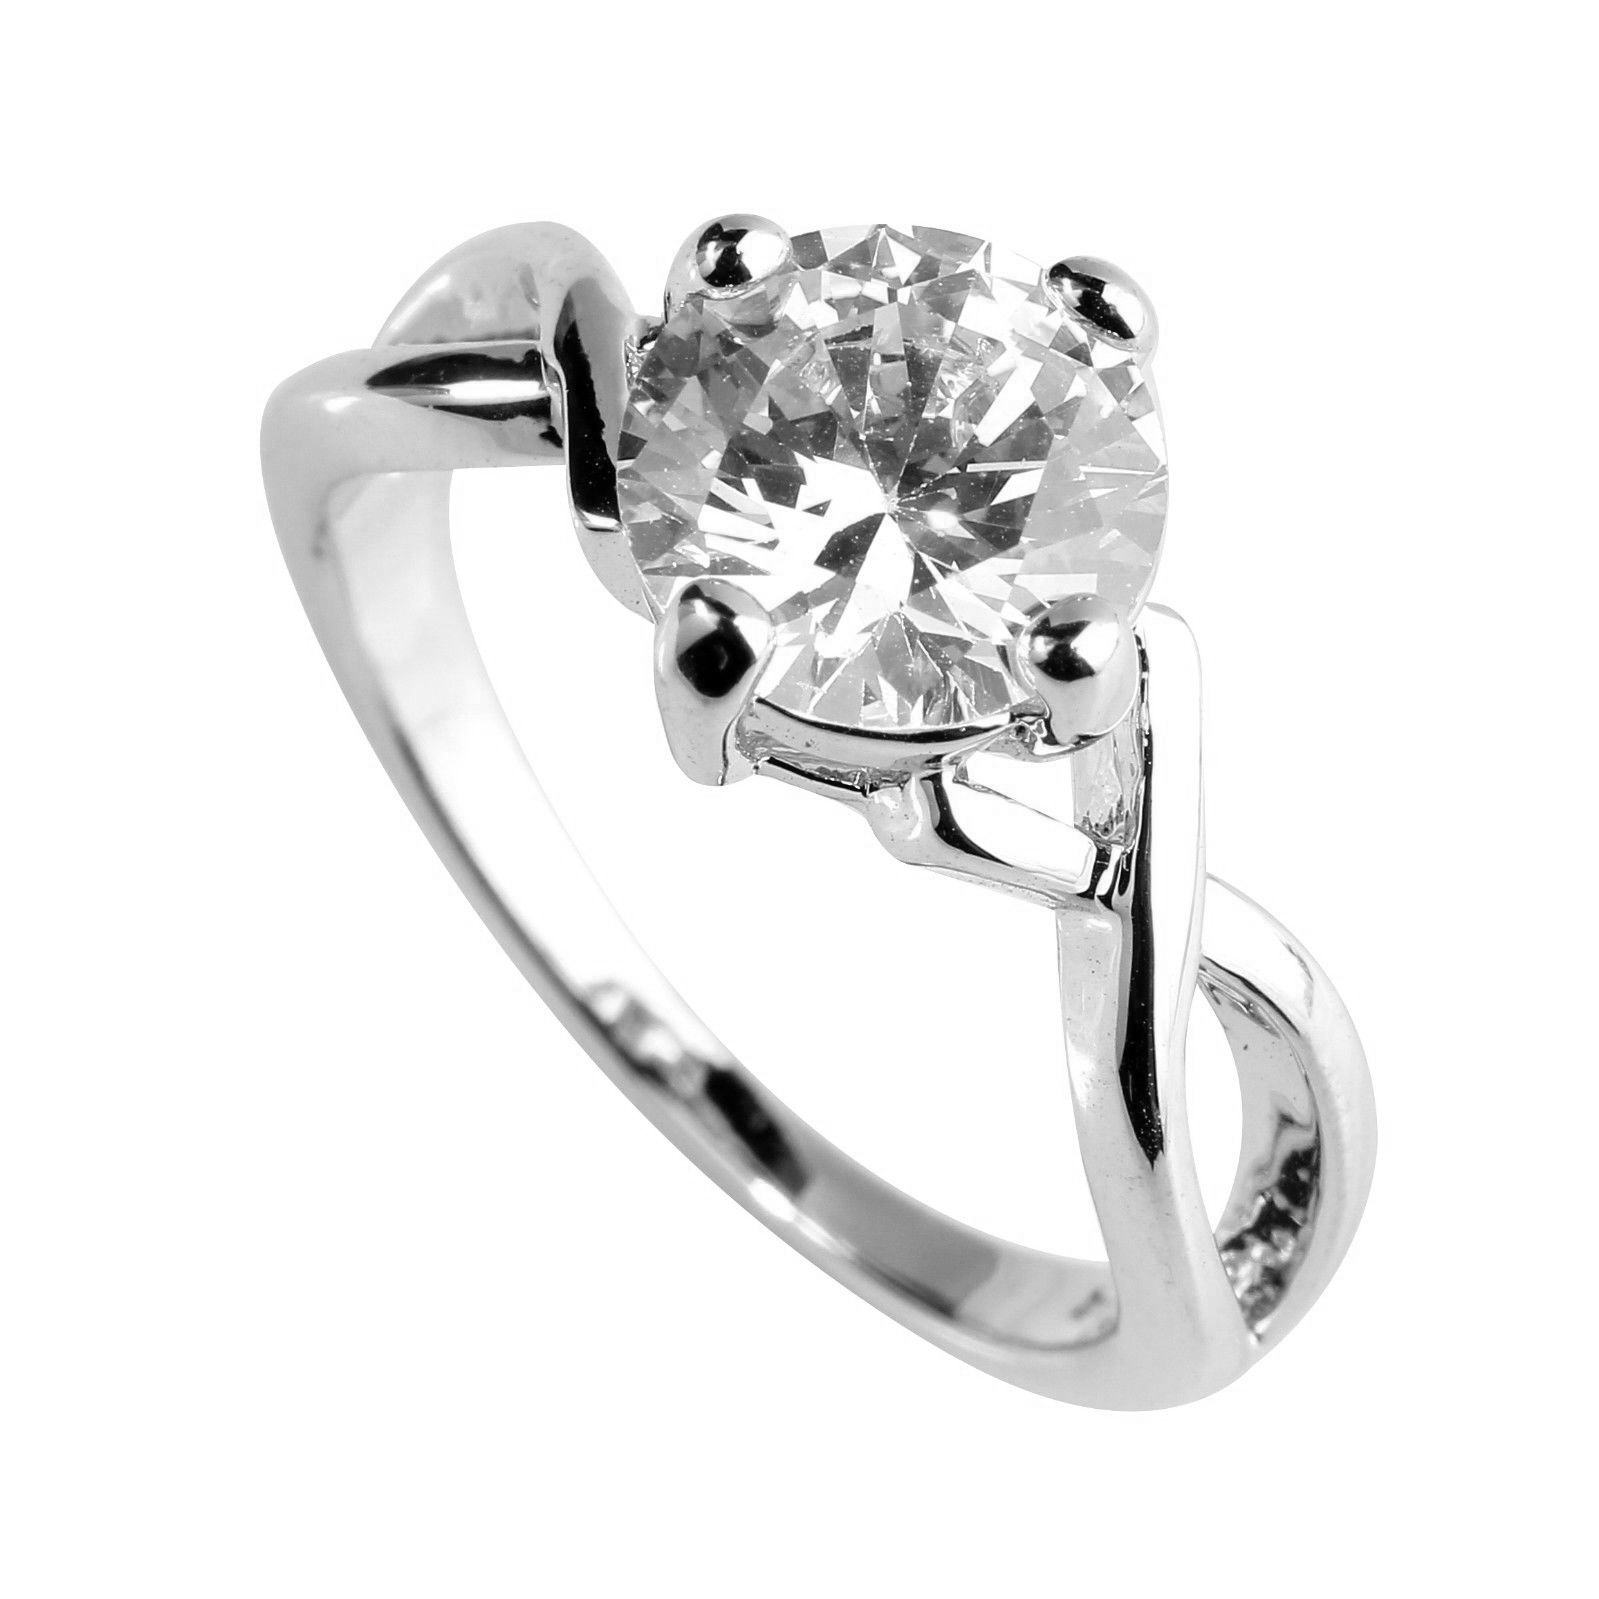 Cubic Zirconia 4 Claw Ring Silver Size 6